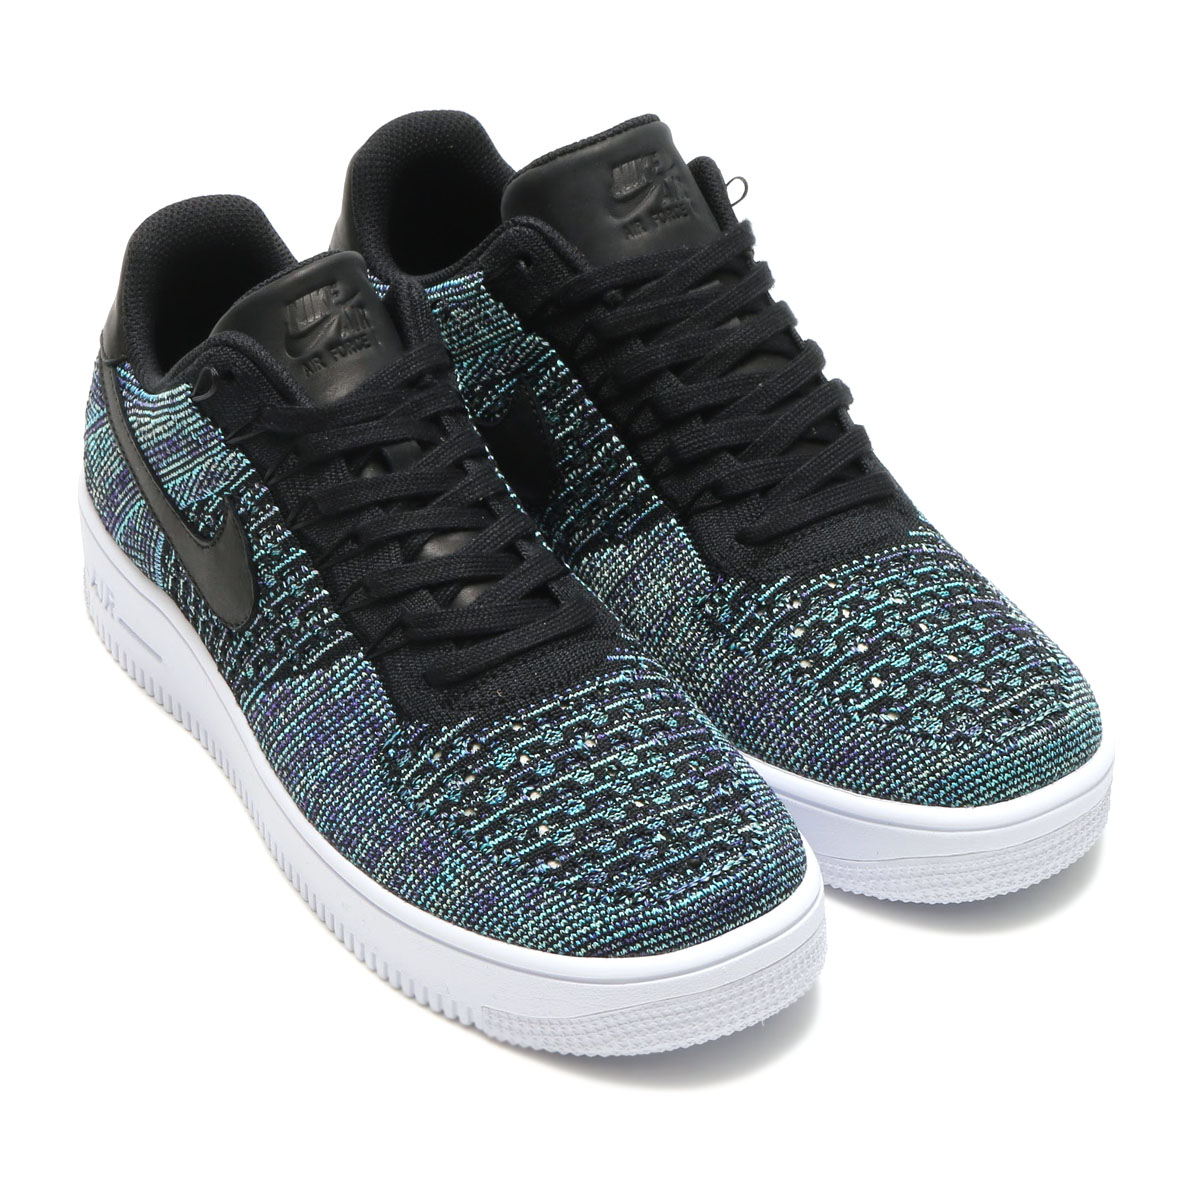 buy popular 7f17e de6f1 NIKE AF1 ULTRA FLYKNIT LOW QS (air force 1 ultra fly knit low QS) (VAPOR  GREEN BLACK) 17SP-S